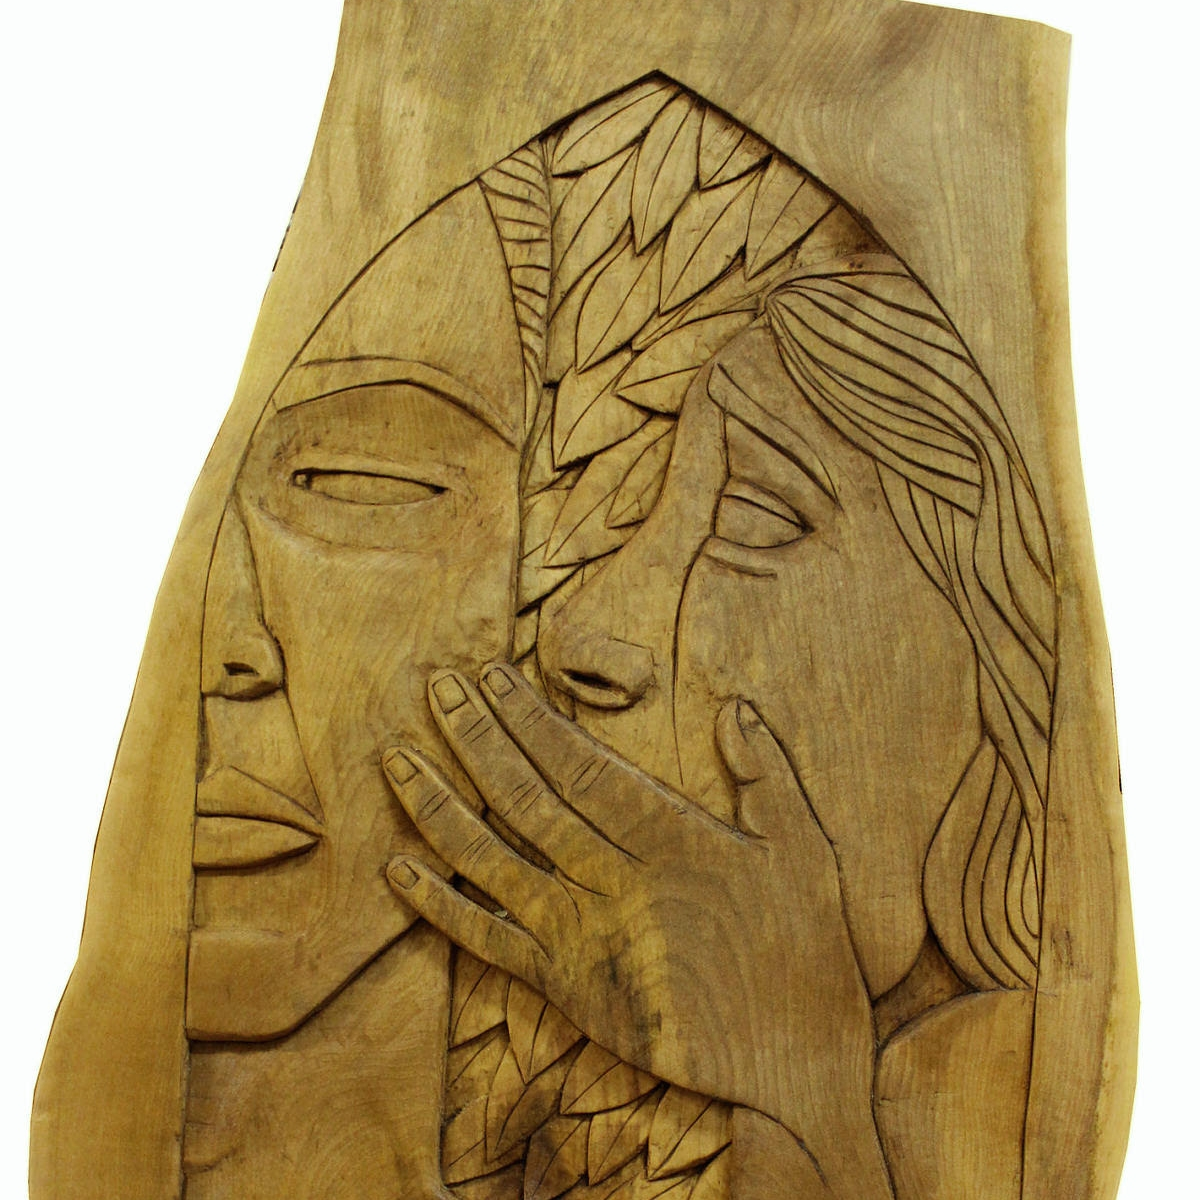 Cathy Weir Carving.jpg